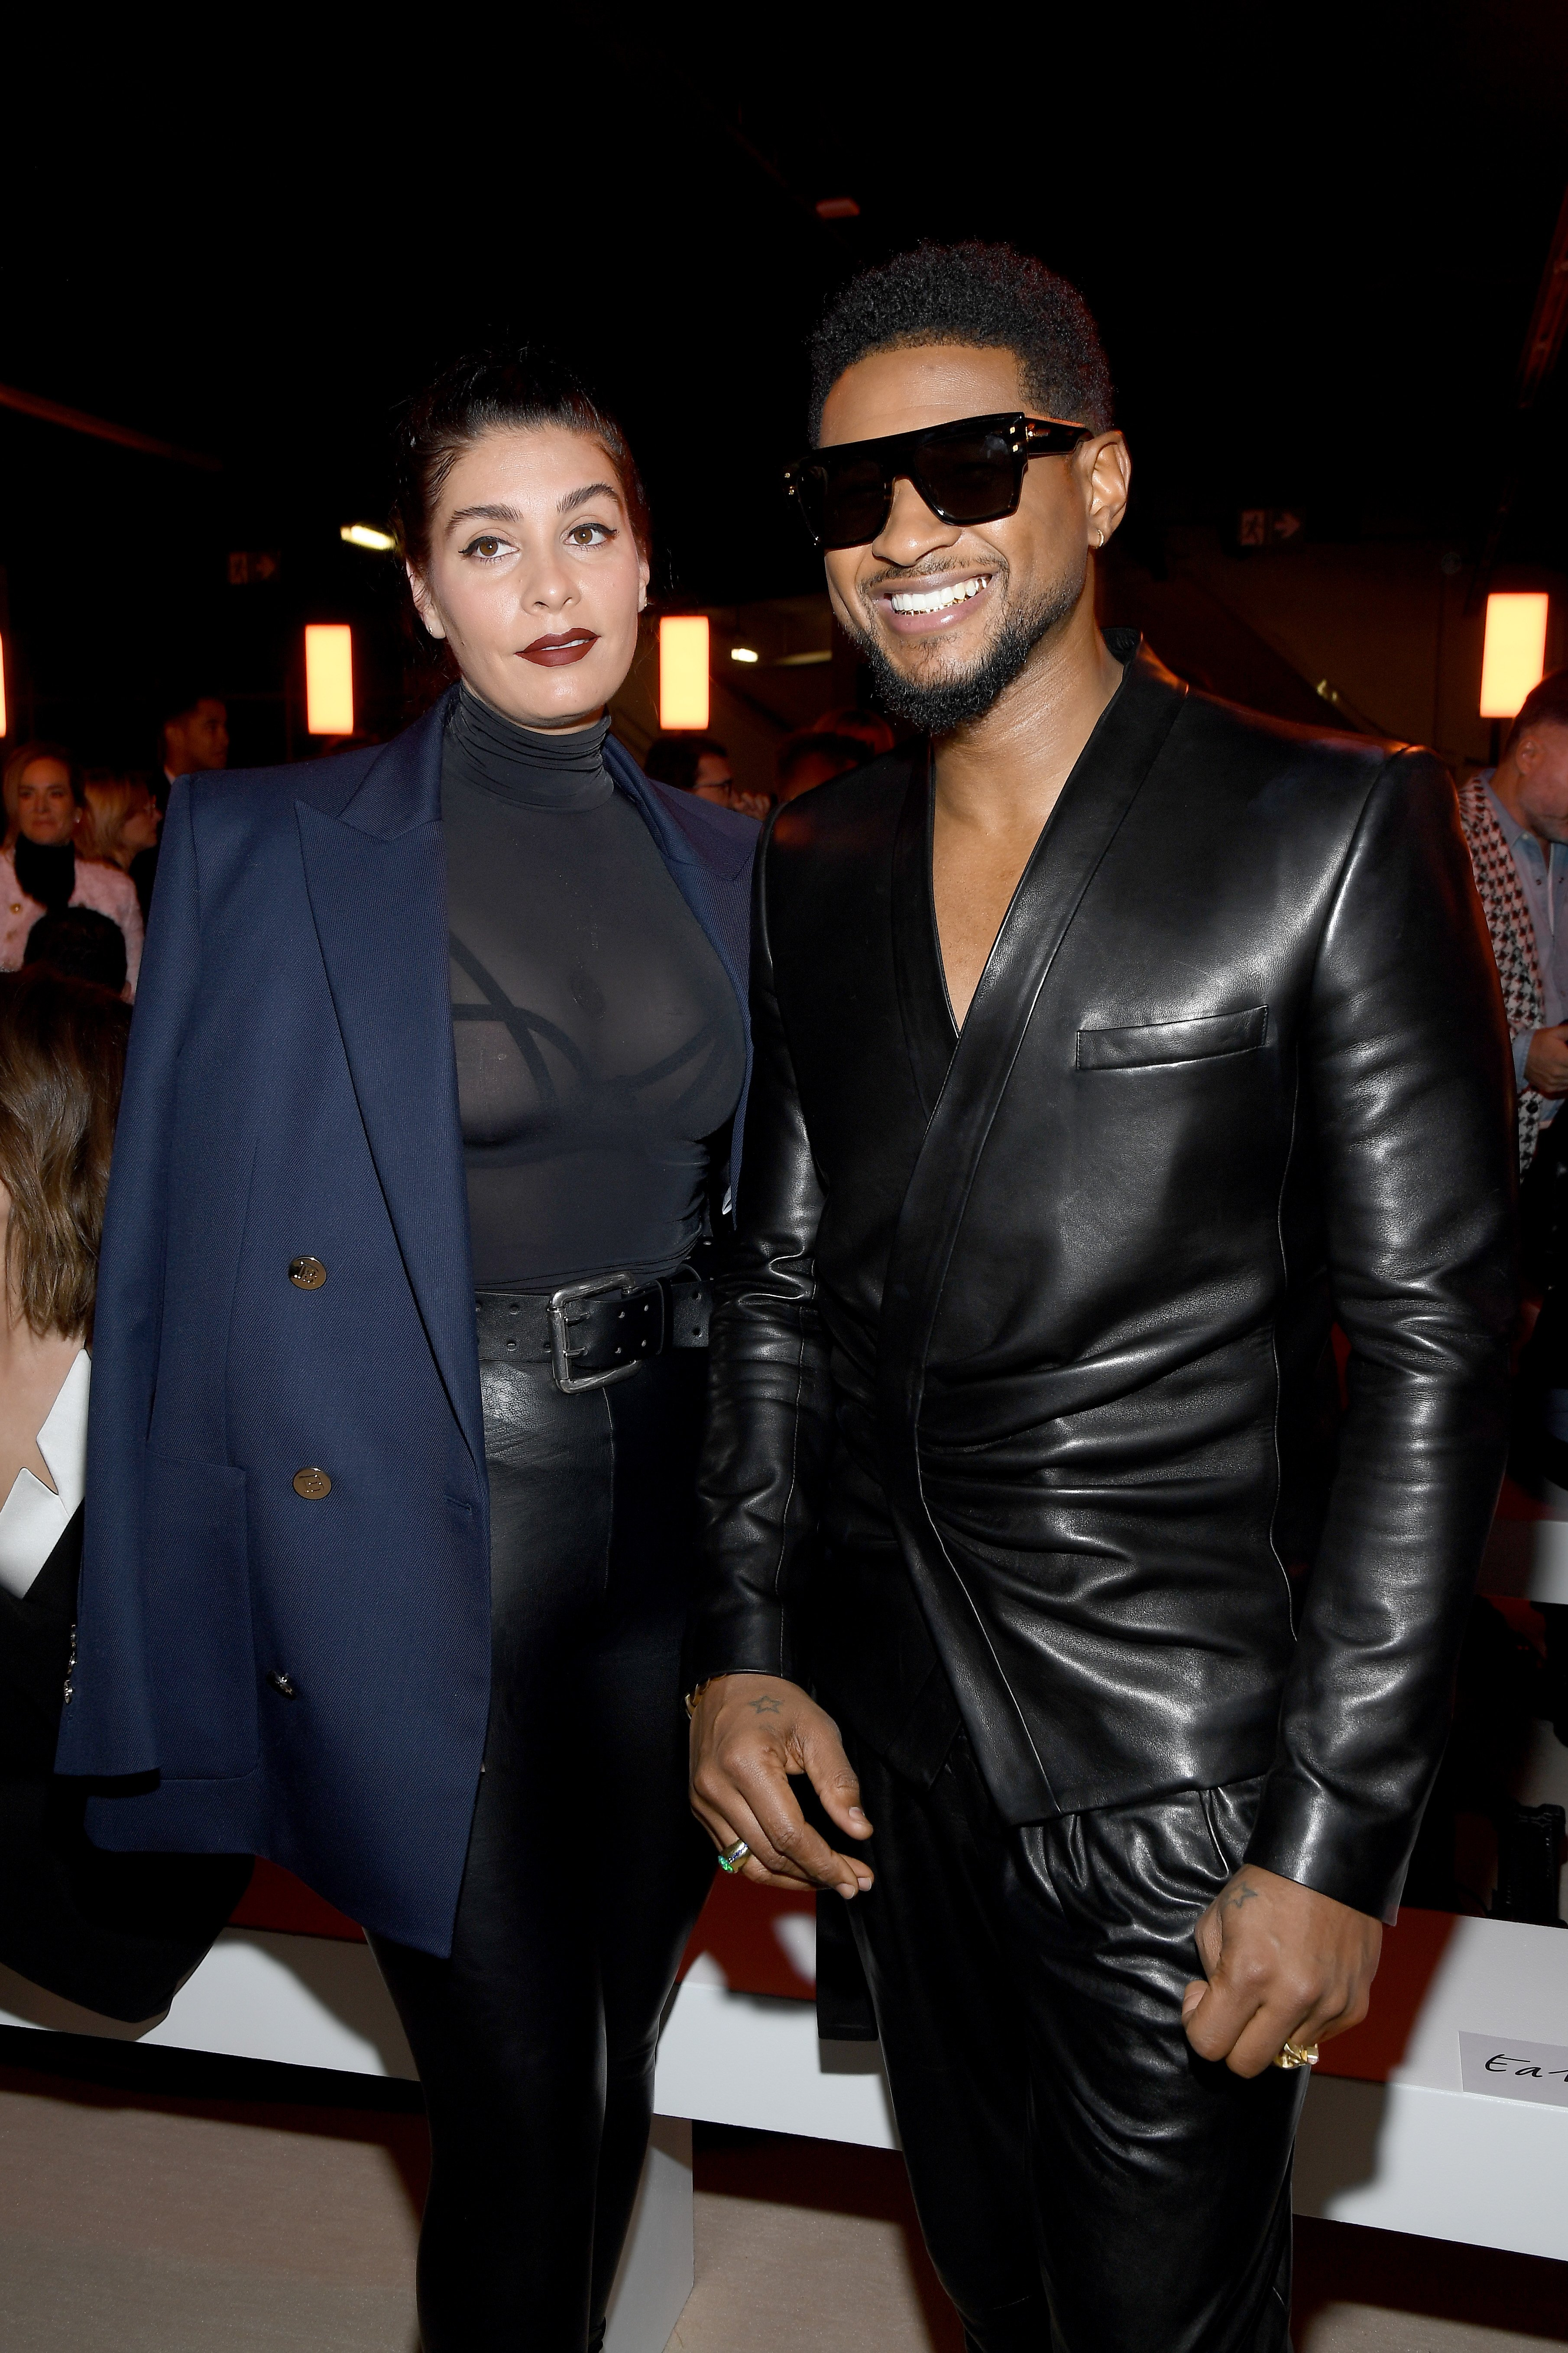 Jenn Goicoechea and Usher attend the Balmain show at Paris Fashion Week on February 28, 2020 in Paris, France.   Source: Getty Images